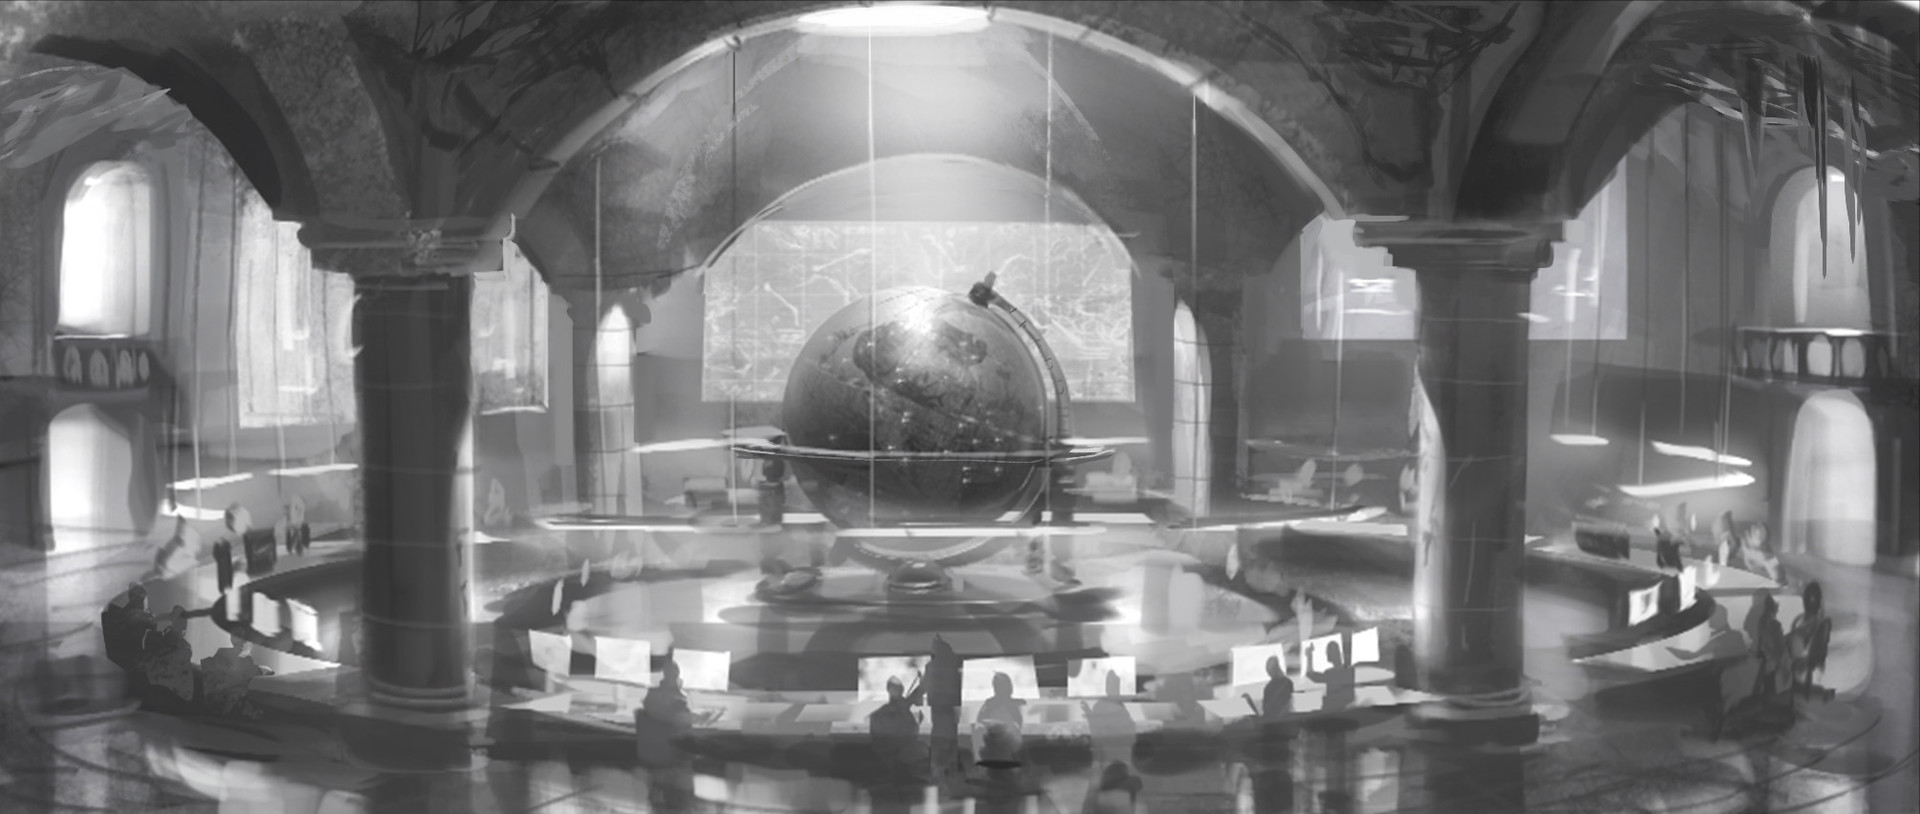 My breakthrough came with this sketch, replacing the traditional world map screens with an ancient globe retrofitted with LED displays.